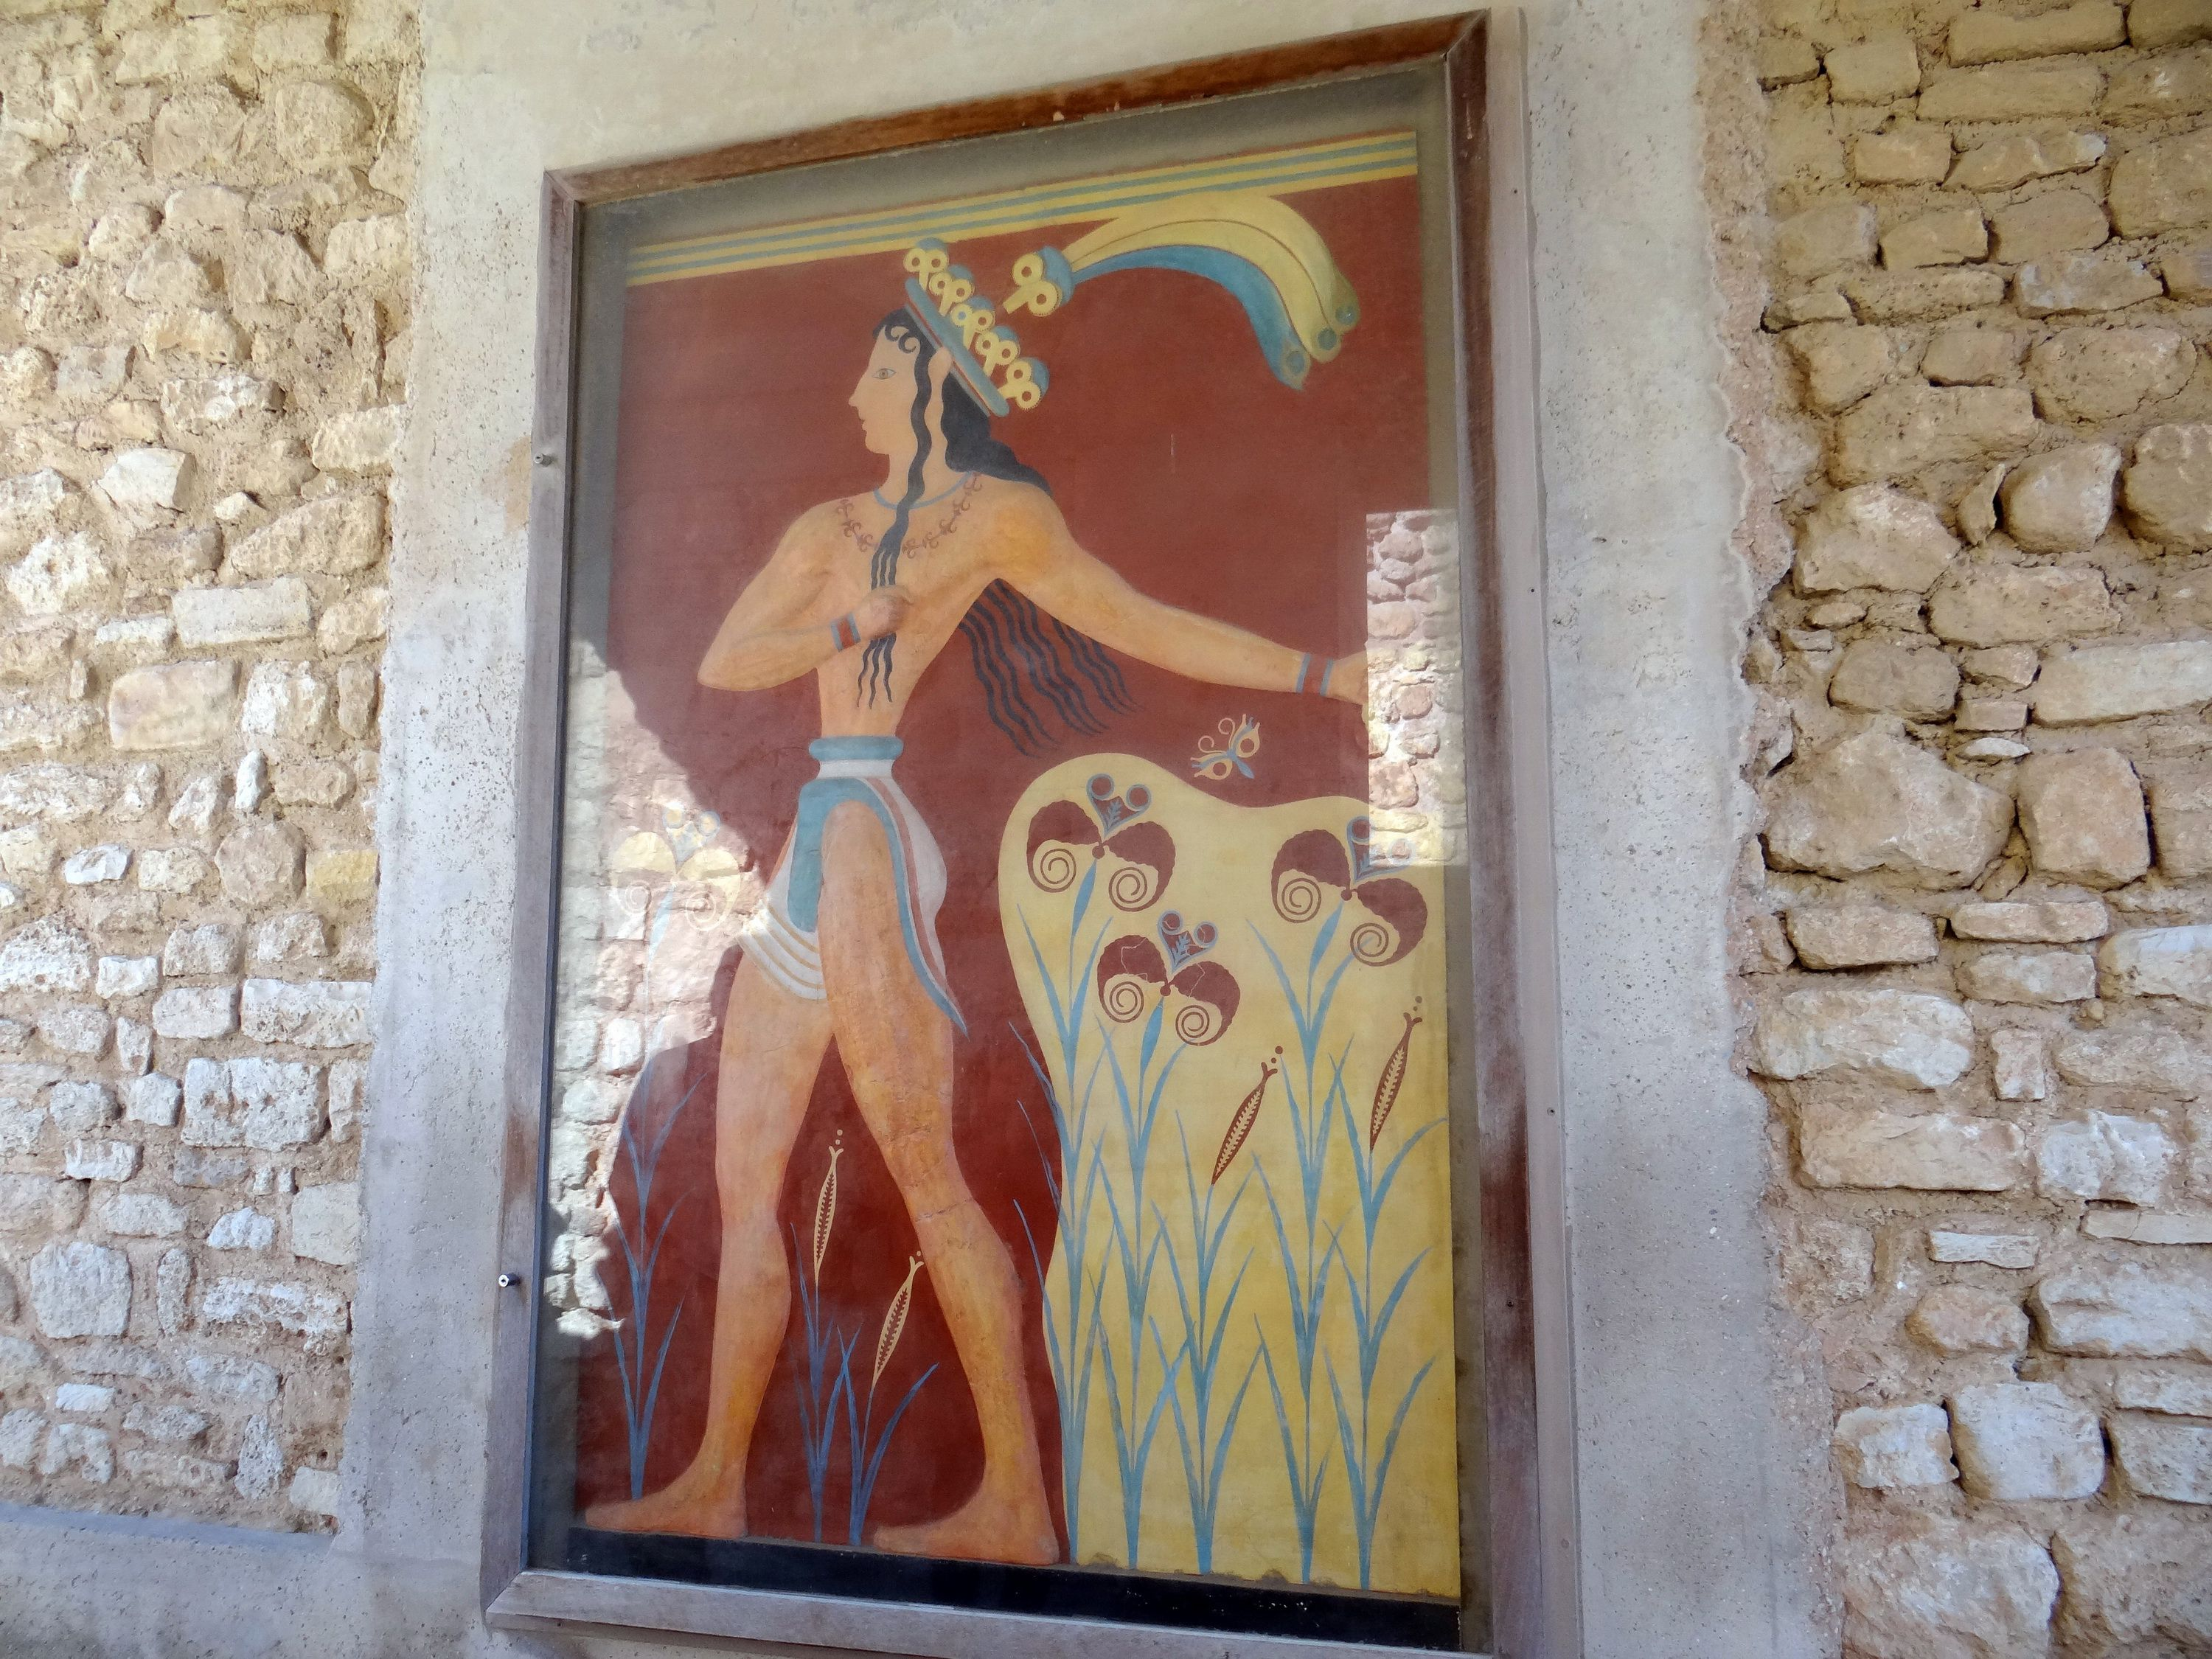 Prince of Lilies at Palace of Knossos, Crete